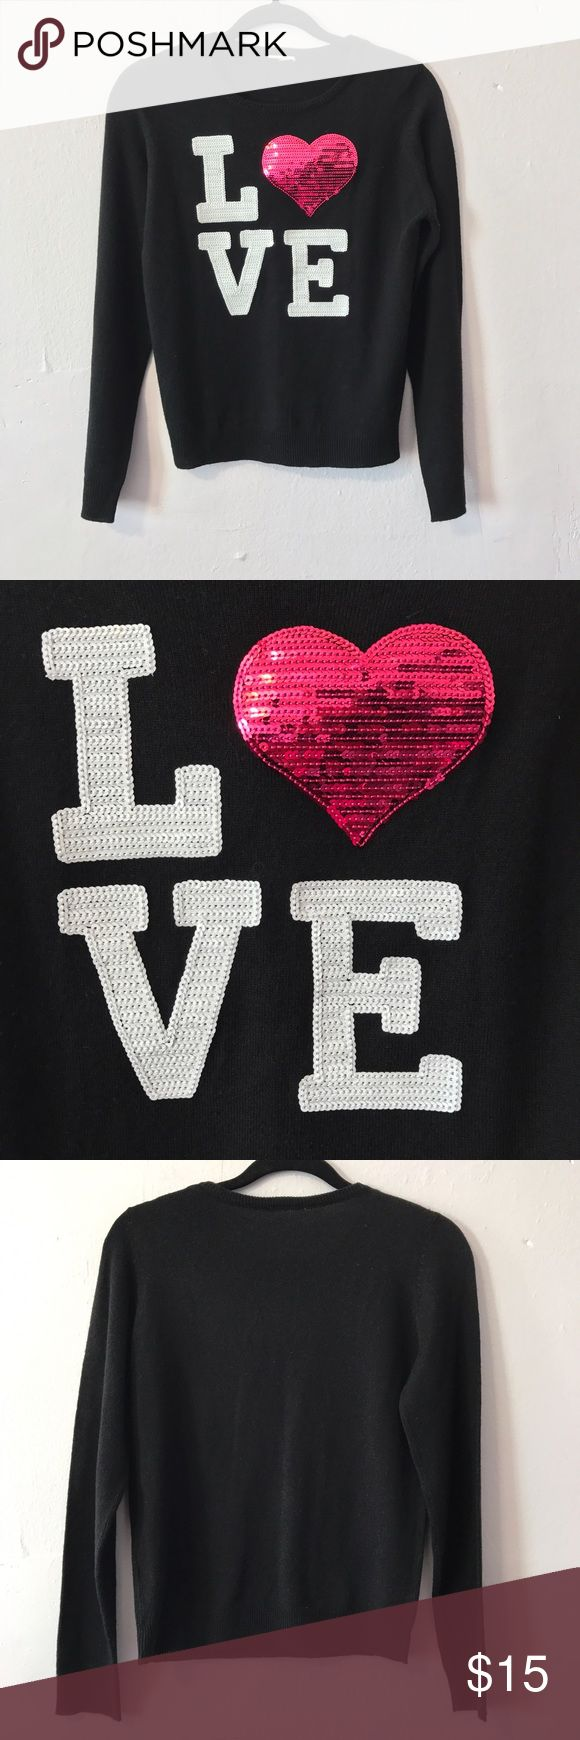 Sequin Heart sweater love black pink girly cute Cute sequin appliqué sweater, lightweight knit, comfy, and easy to wear. Perfect tip to layer over a cami. Perfect condition and only worn once. Best fits a juniors size Medium or standard size Small. Labels have been removed. Purchased from a boutique and not Forever 21, just tagged for exposure. Get this cutie before it's gone! Forever 21 Sweaters Crew & Scoop Necks